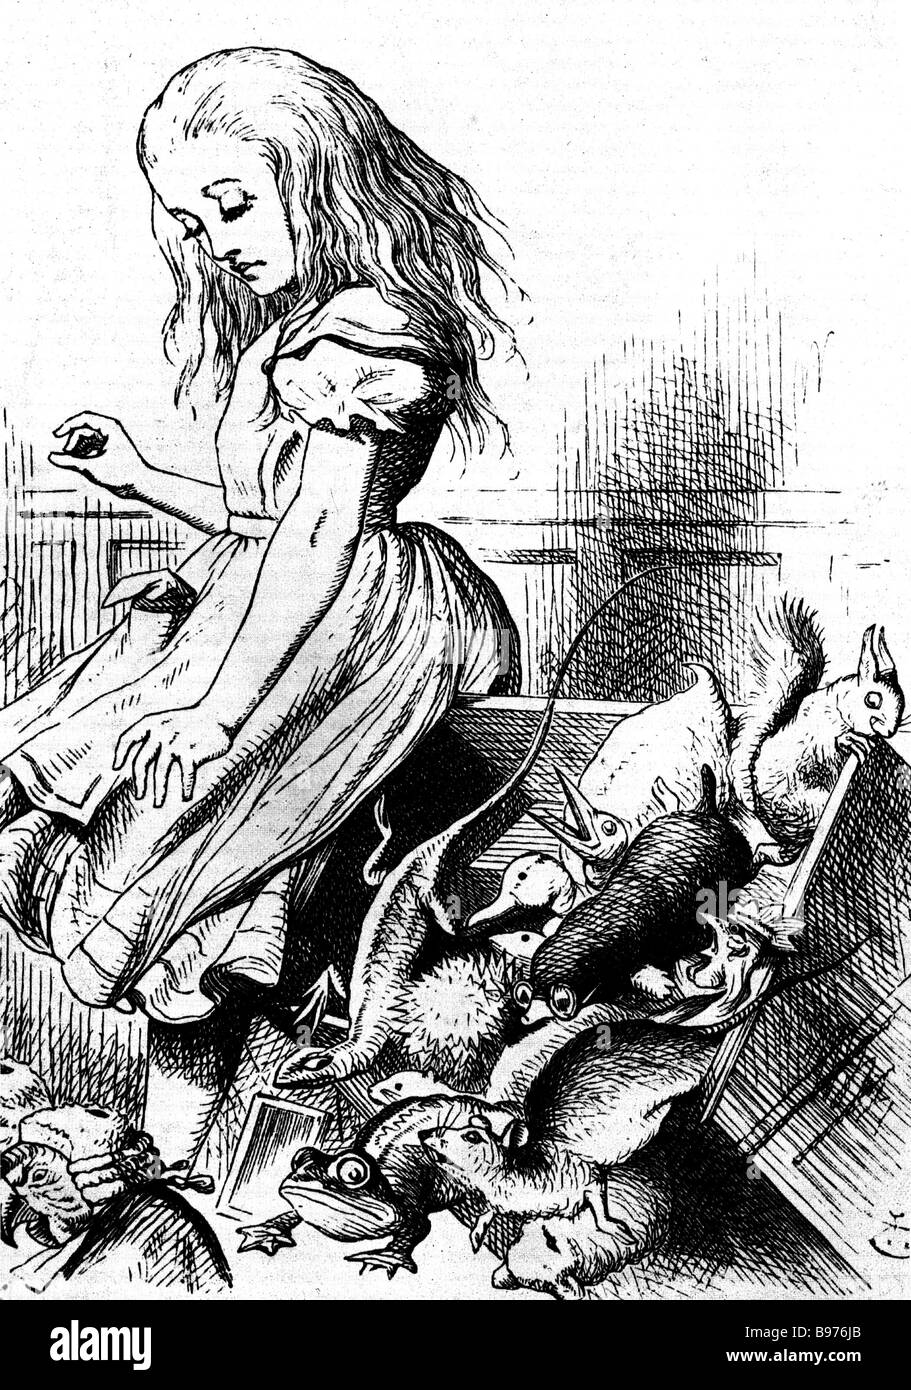 ALICE'S ADVENTURES IN WONDERLAND from the 1865 first edition of the book by Lewis Carroll drawn by John Tenniel - Stock Image